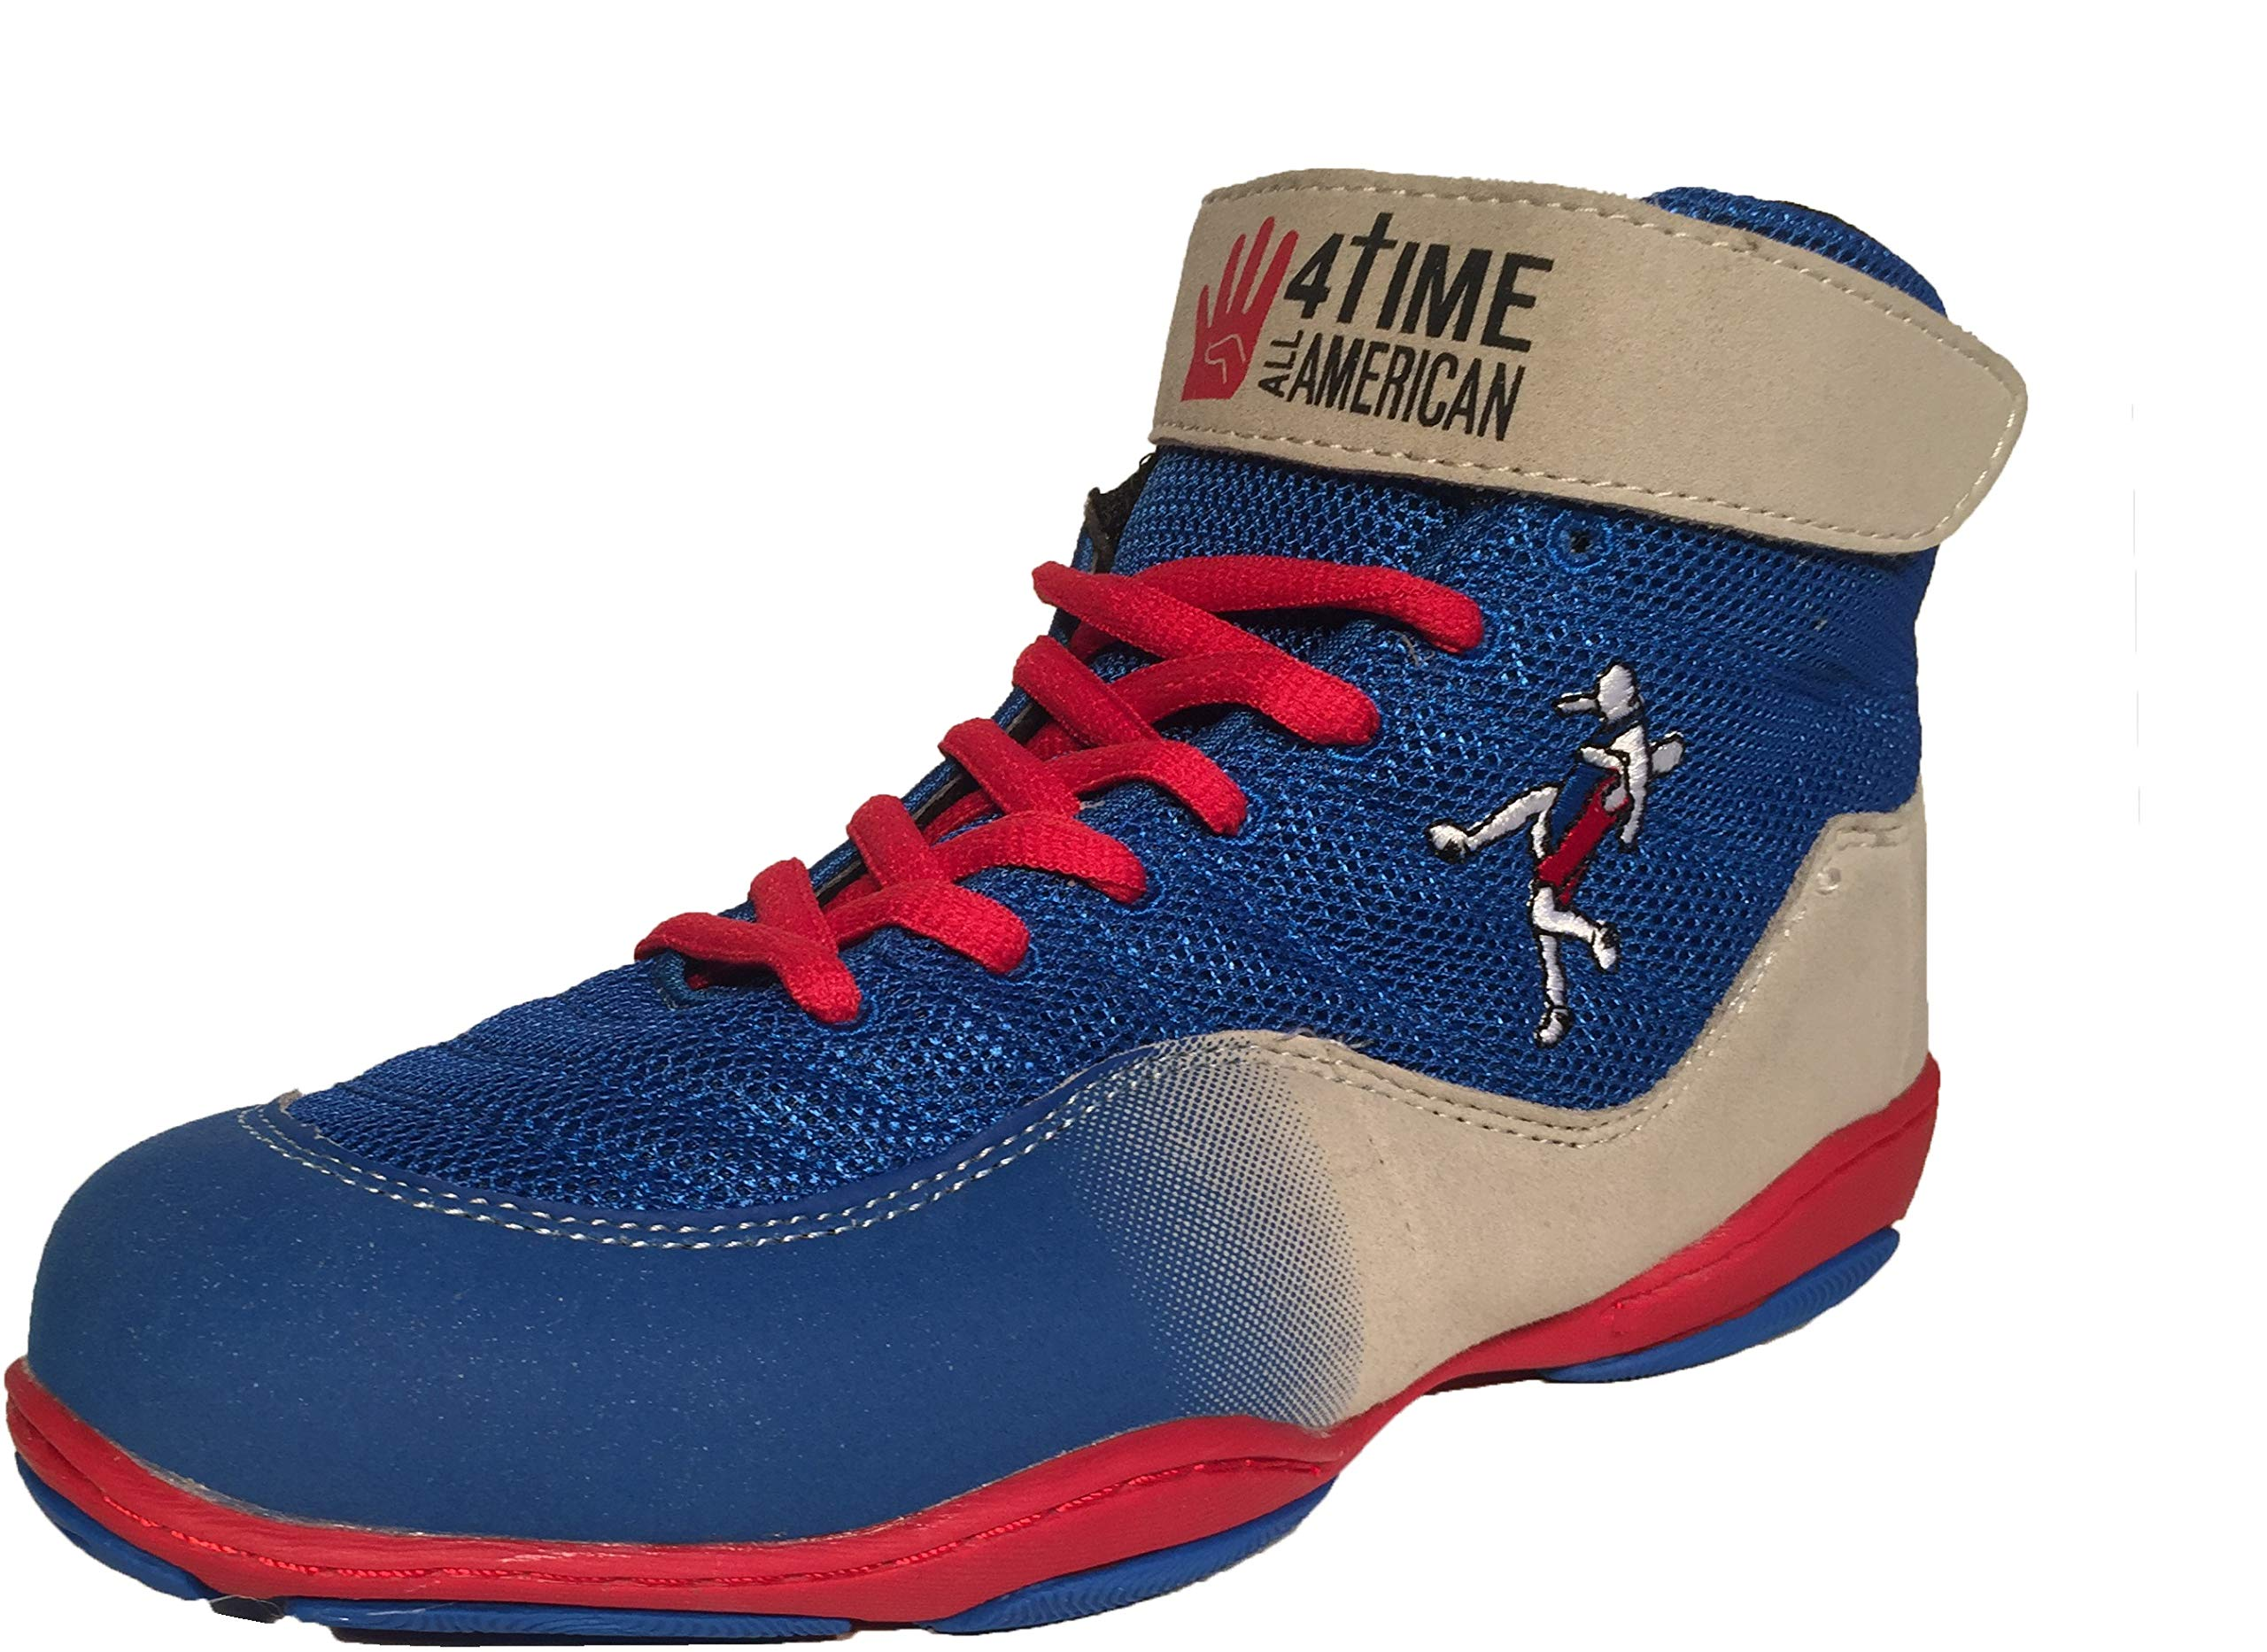 4-Time All American The Patriot, Blue Wrestling Shoes Size 2 by 4-Time All American